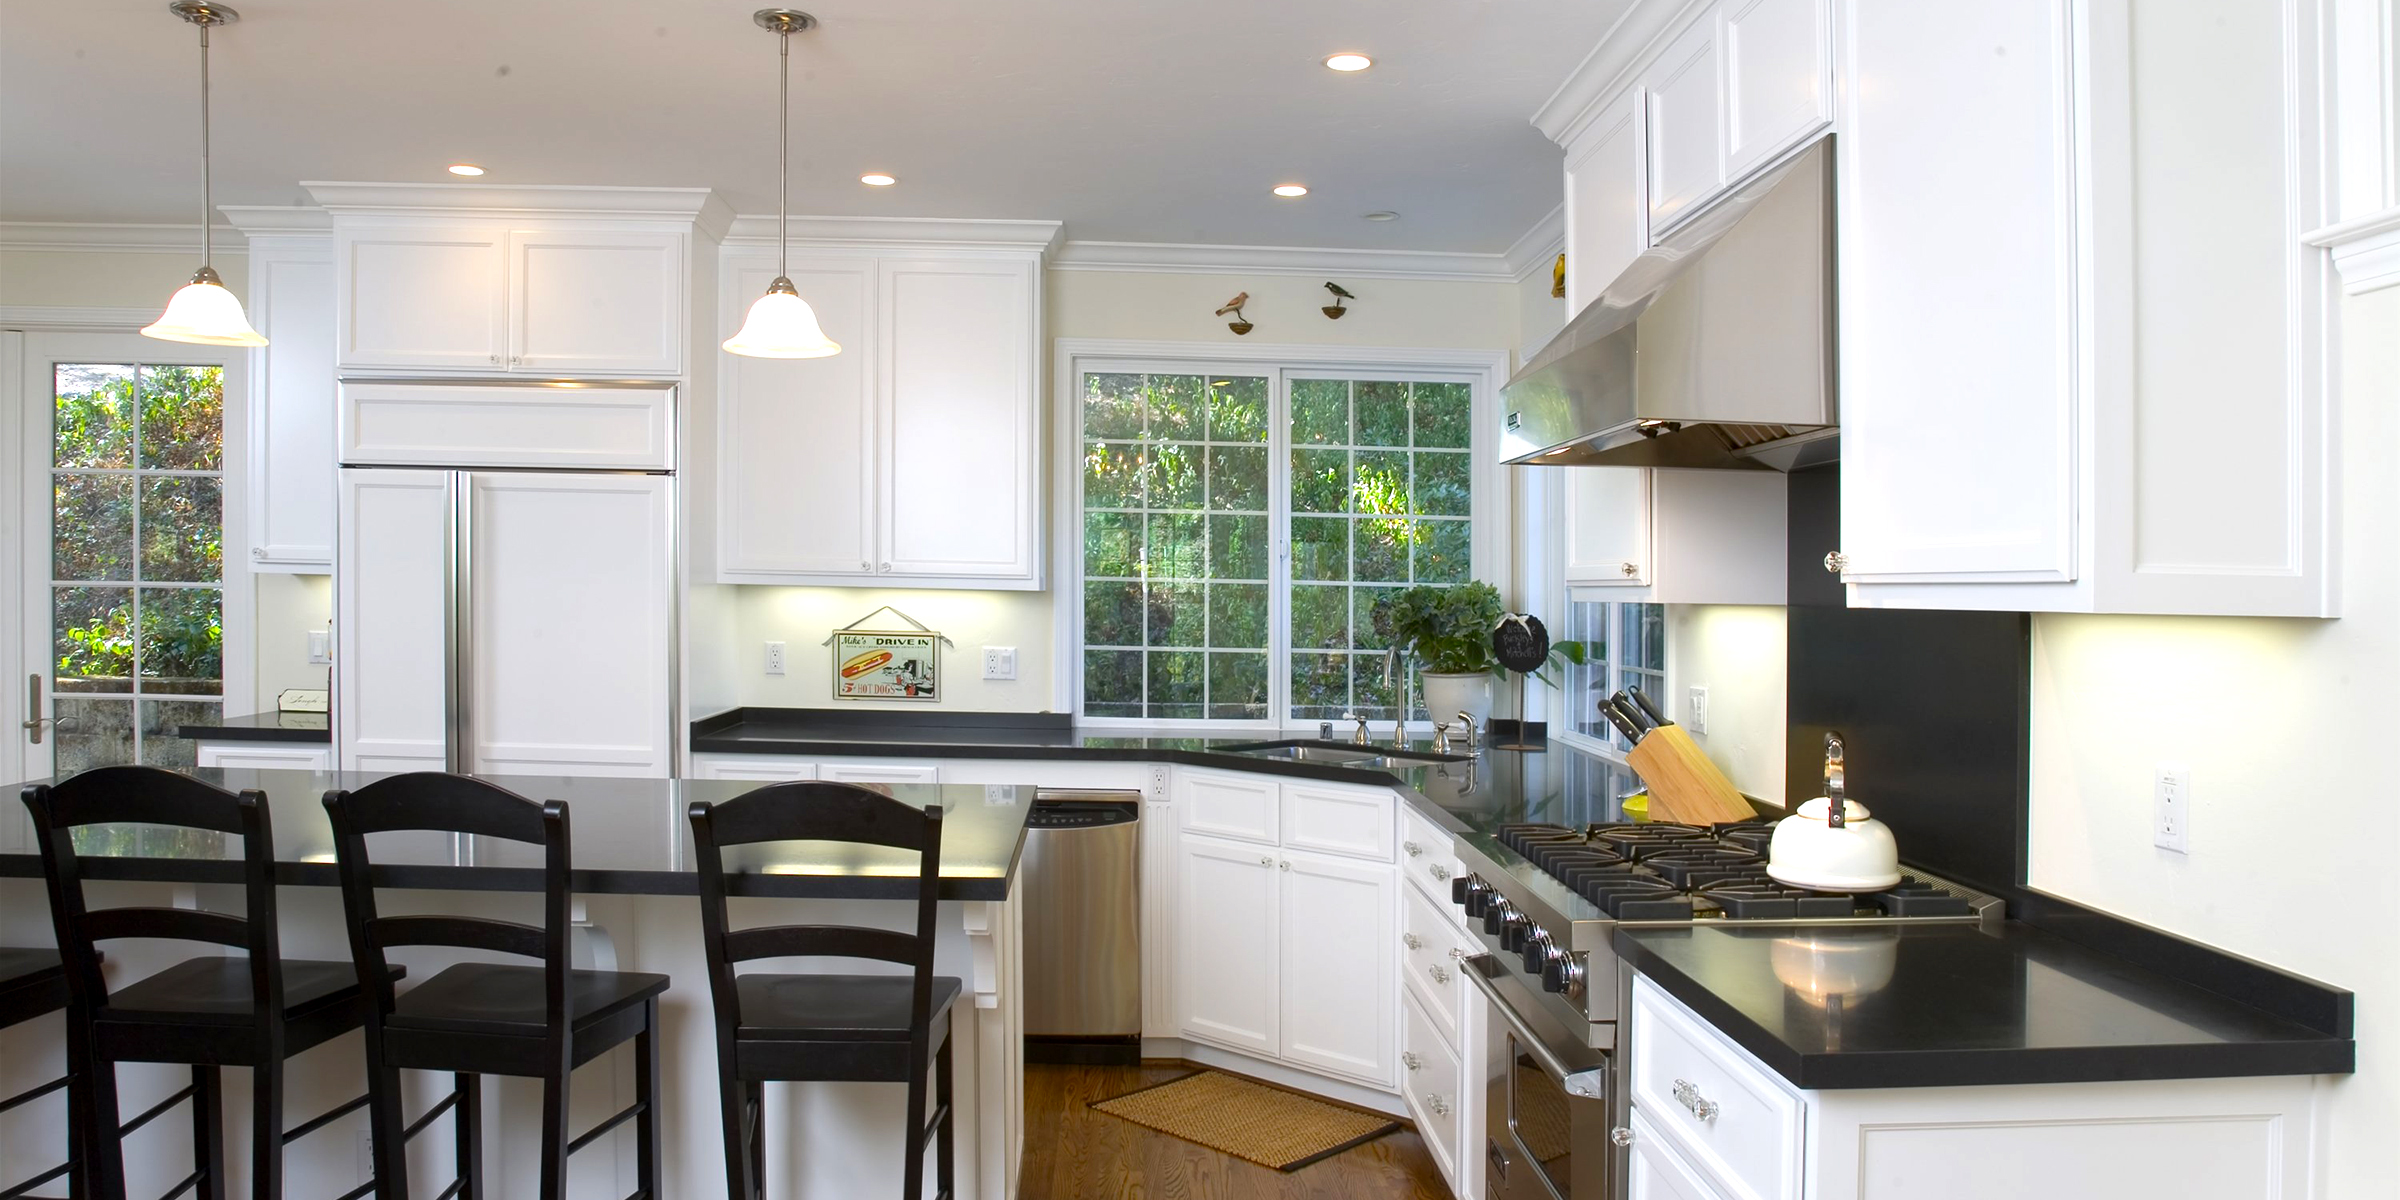 Kitchen remodel cost: Where to spend